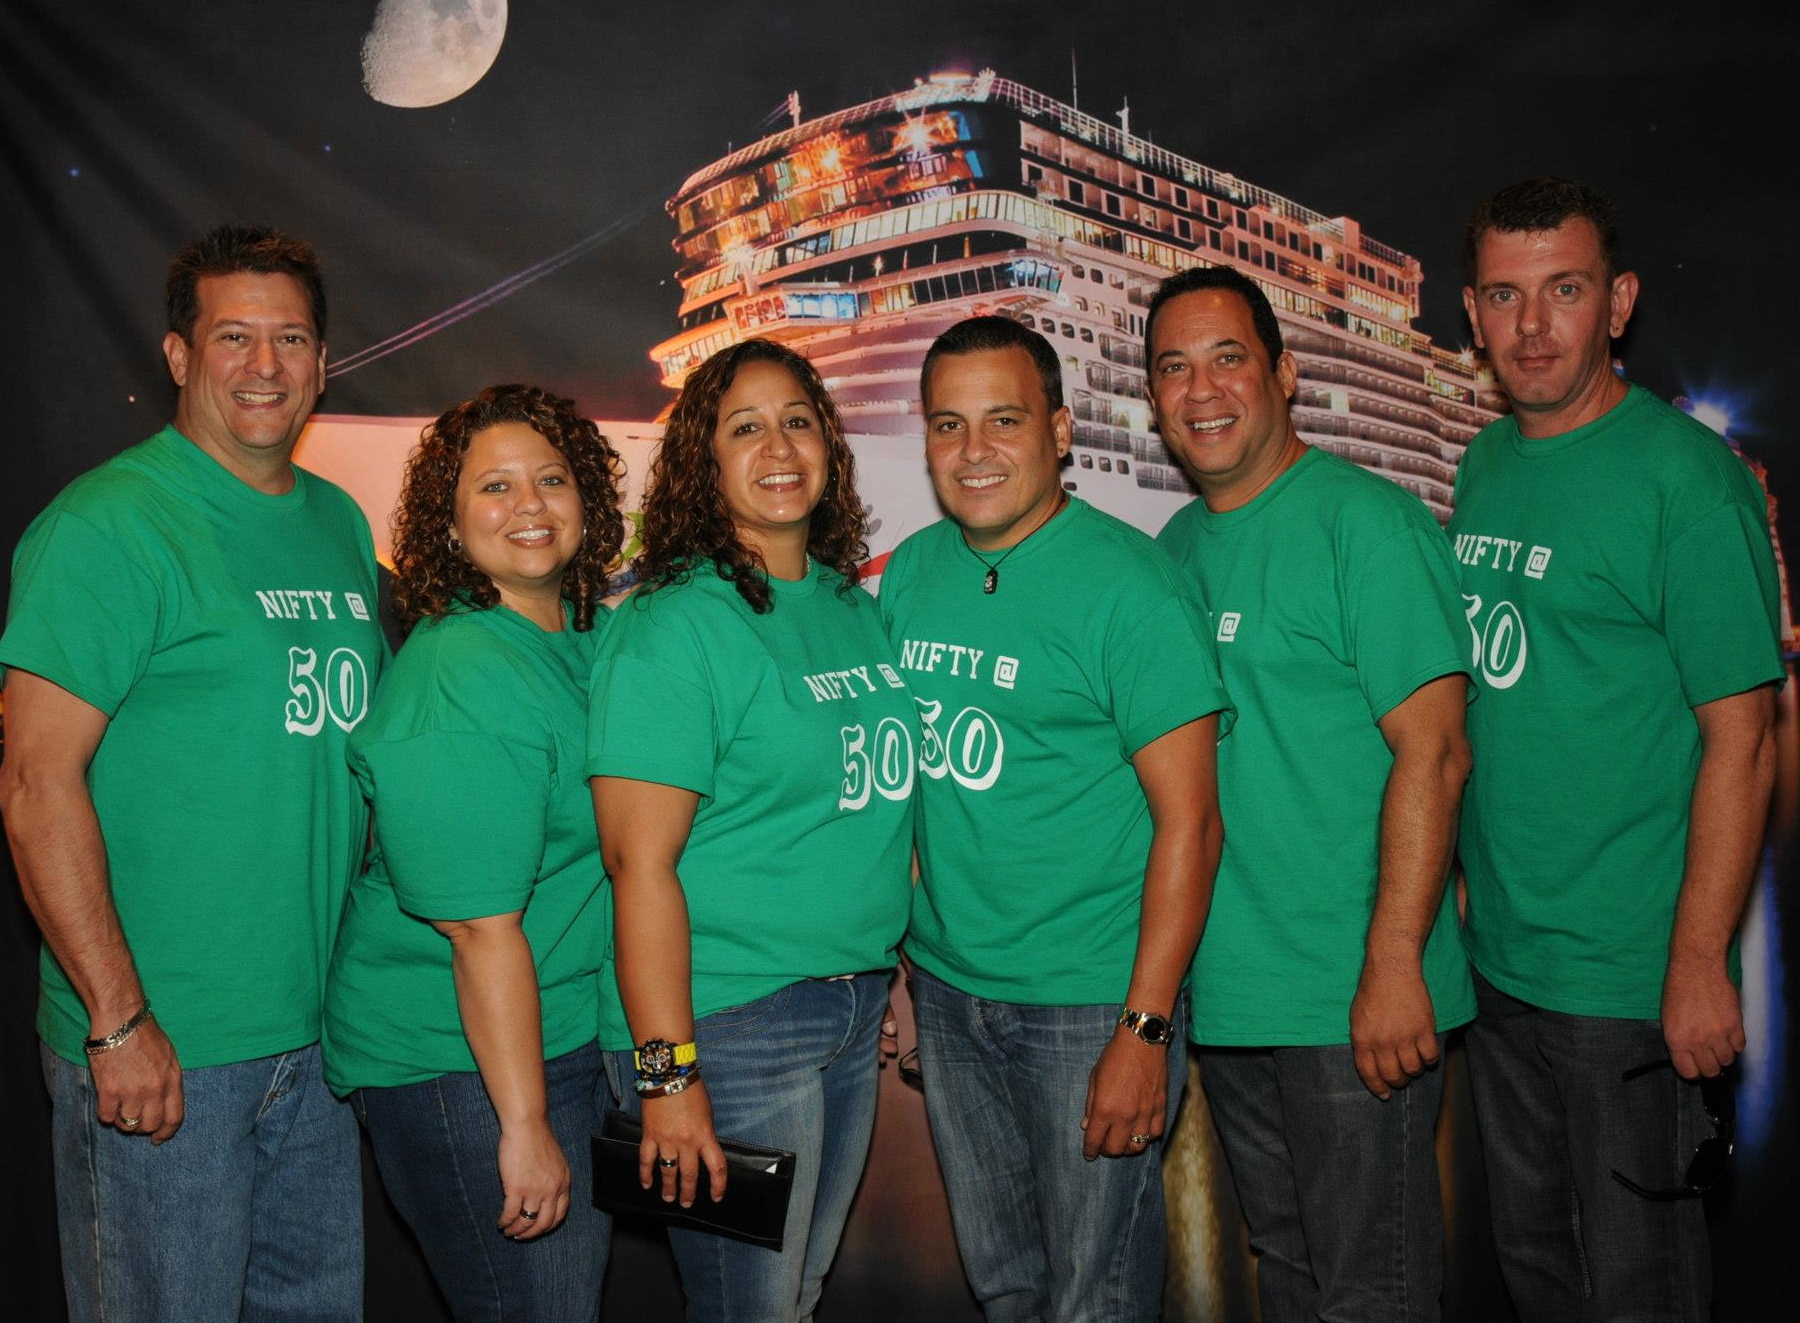 Joes Bday Cruise T Shirt Photo